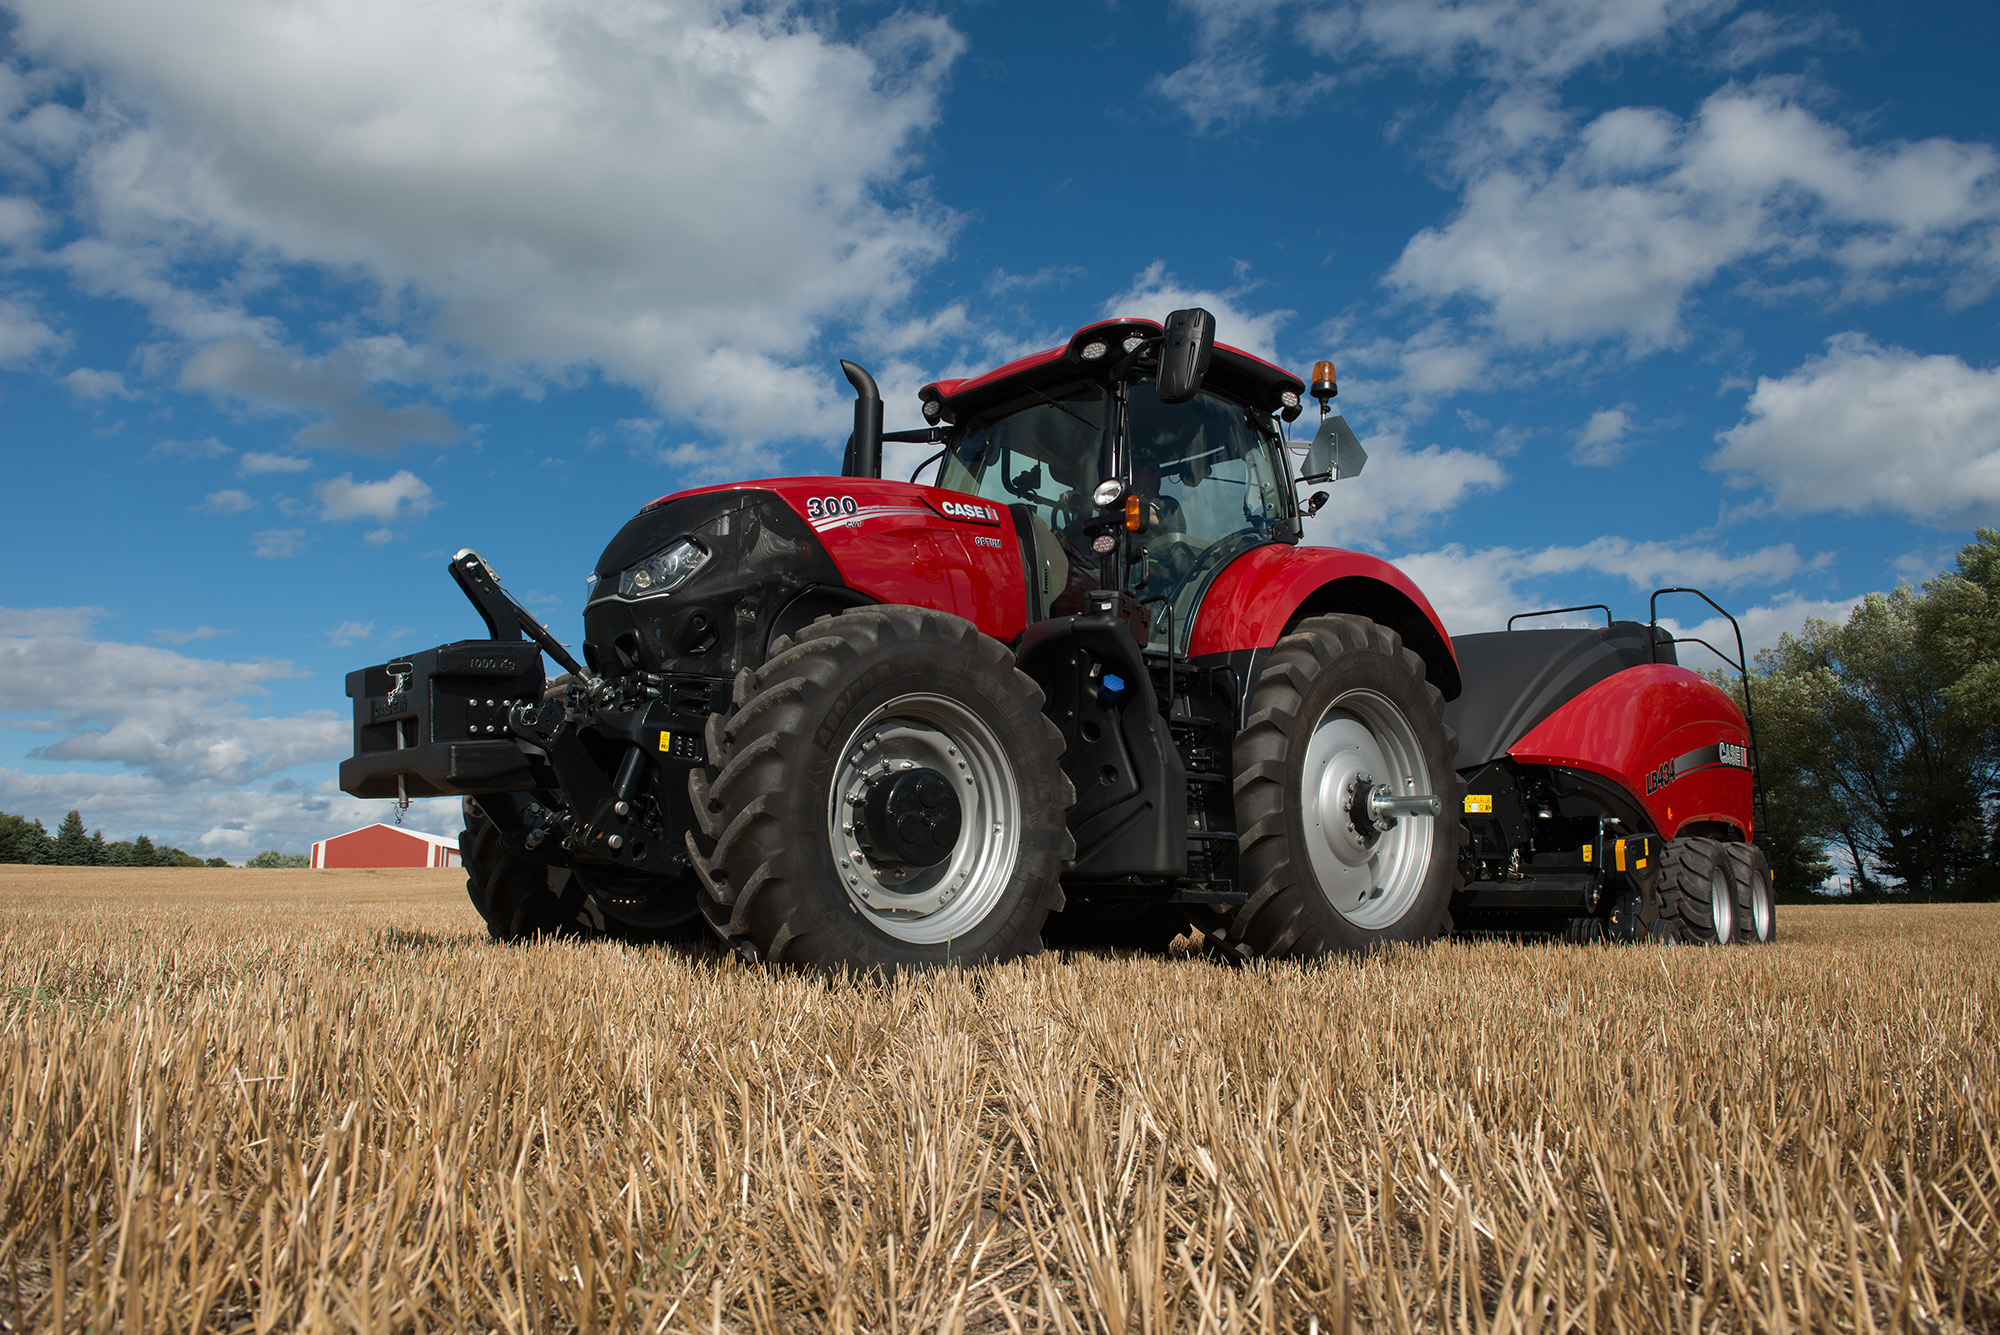 Side view of a Case IH tractor sitting idle in a  field.